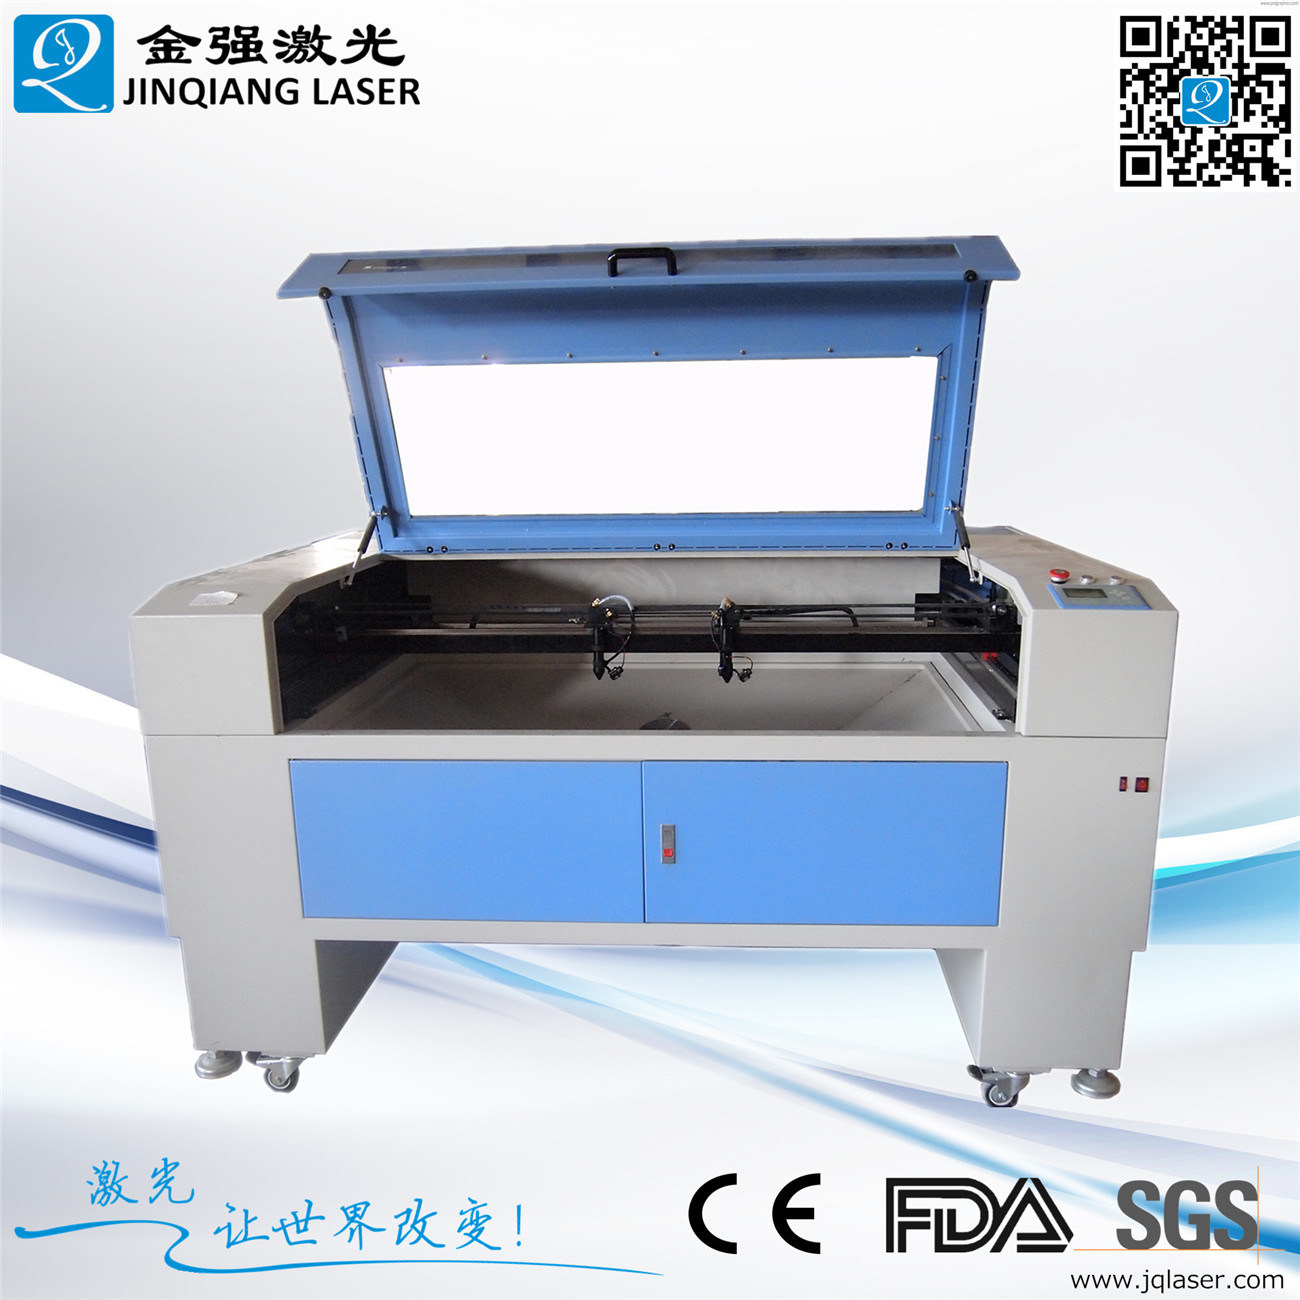 Laser Engraving Glass/ Engraving Bottles Engraver Machine